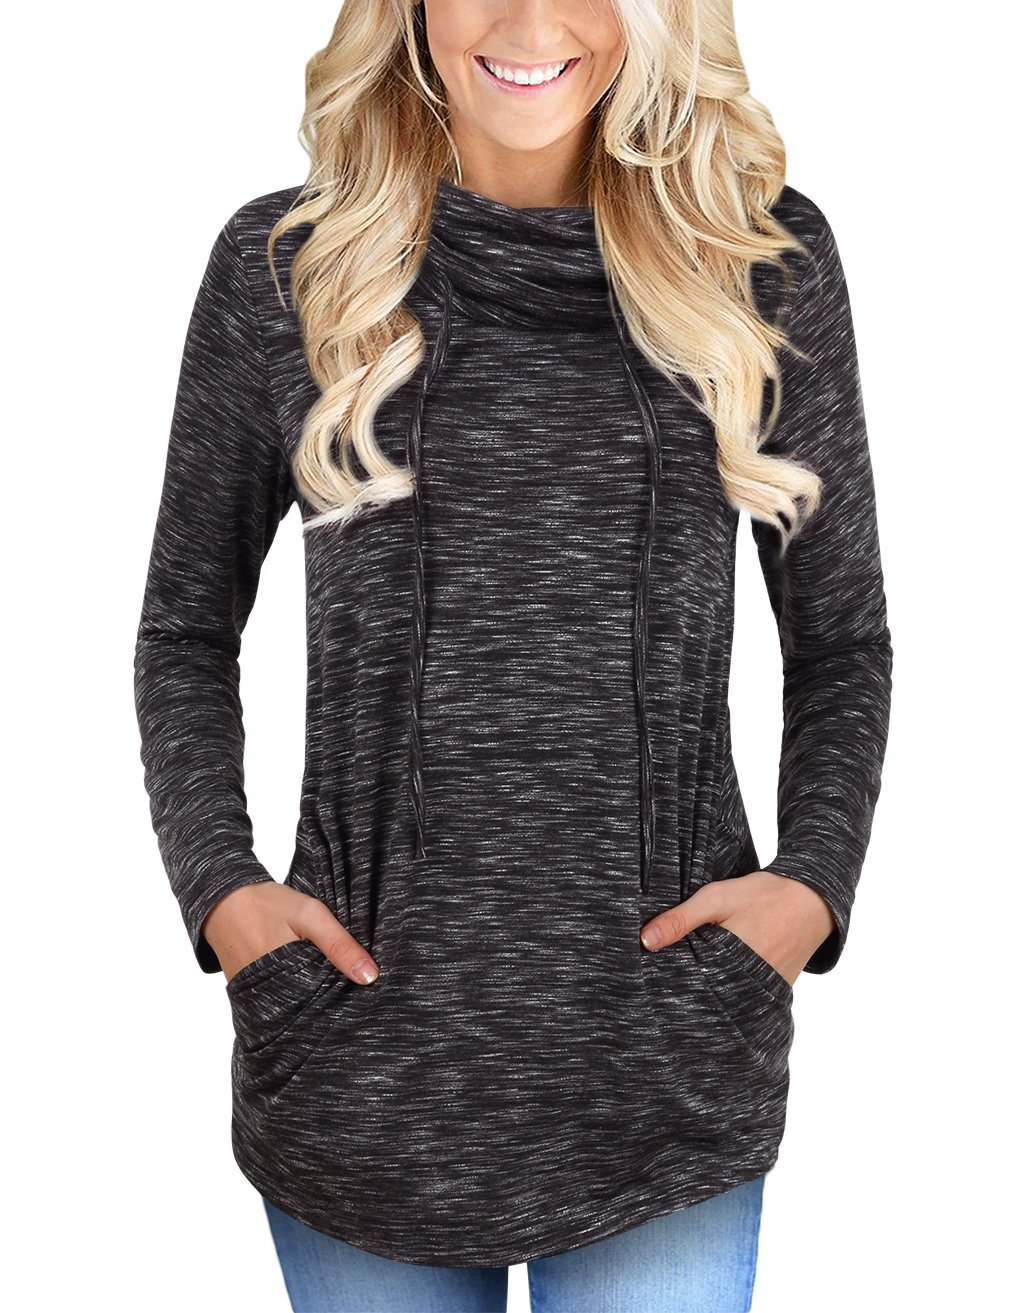 Faddare Activewear Long Sleeve Tops for Women,Cowl Neck Shirt,Black White XL by Faddare (Image #6)